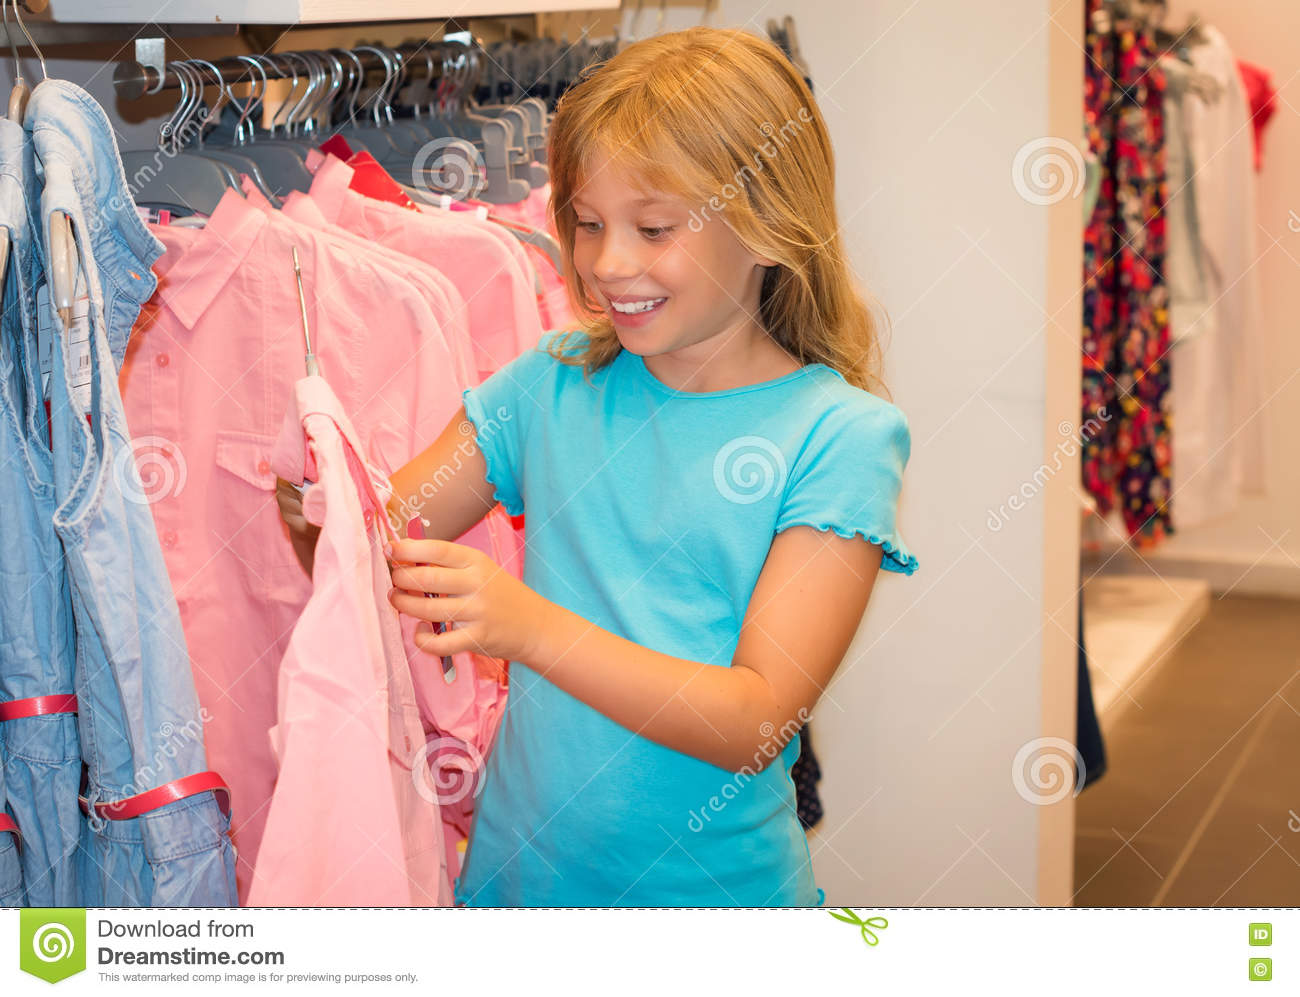 Find great deals on Little Girls Clothes at Kohl's today! Sponsored Links Outside companies pay to advertise via these links when specific phrases and words are searched. Clicking on these links will open a new tab displaying that respective companys own website. Shop Little Girl Clothing. Tops & Sweaters. Dresses. Pajamas. Pants.